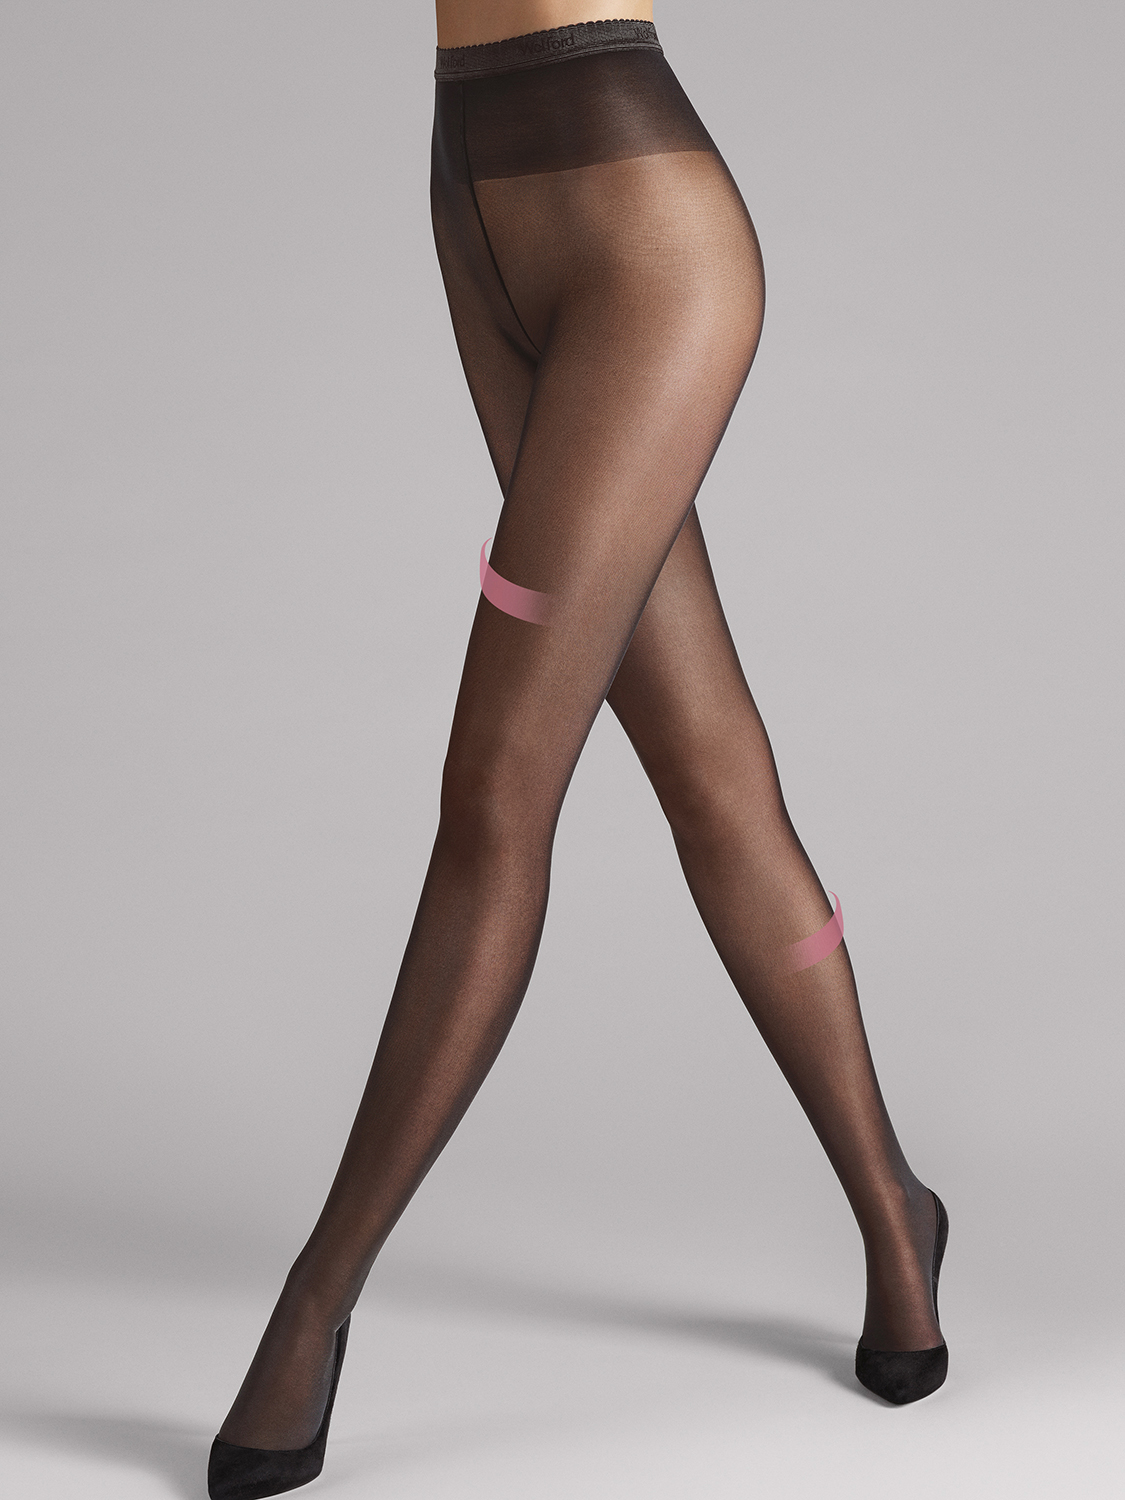 Колготы synergy 40 leg support tights фото